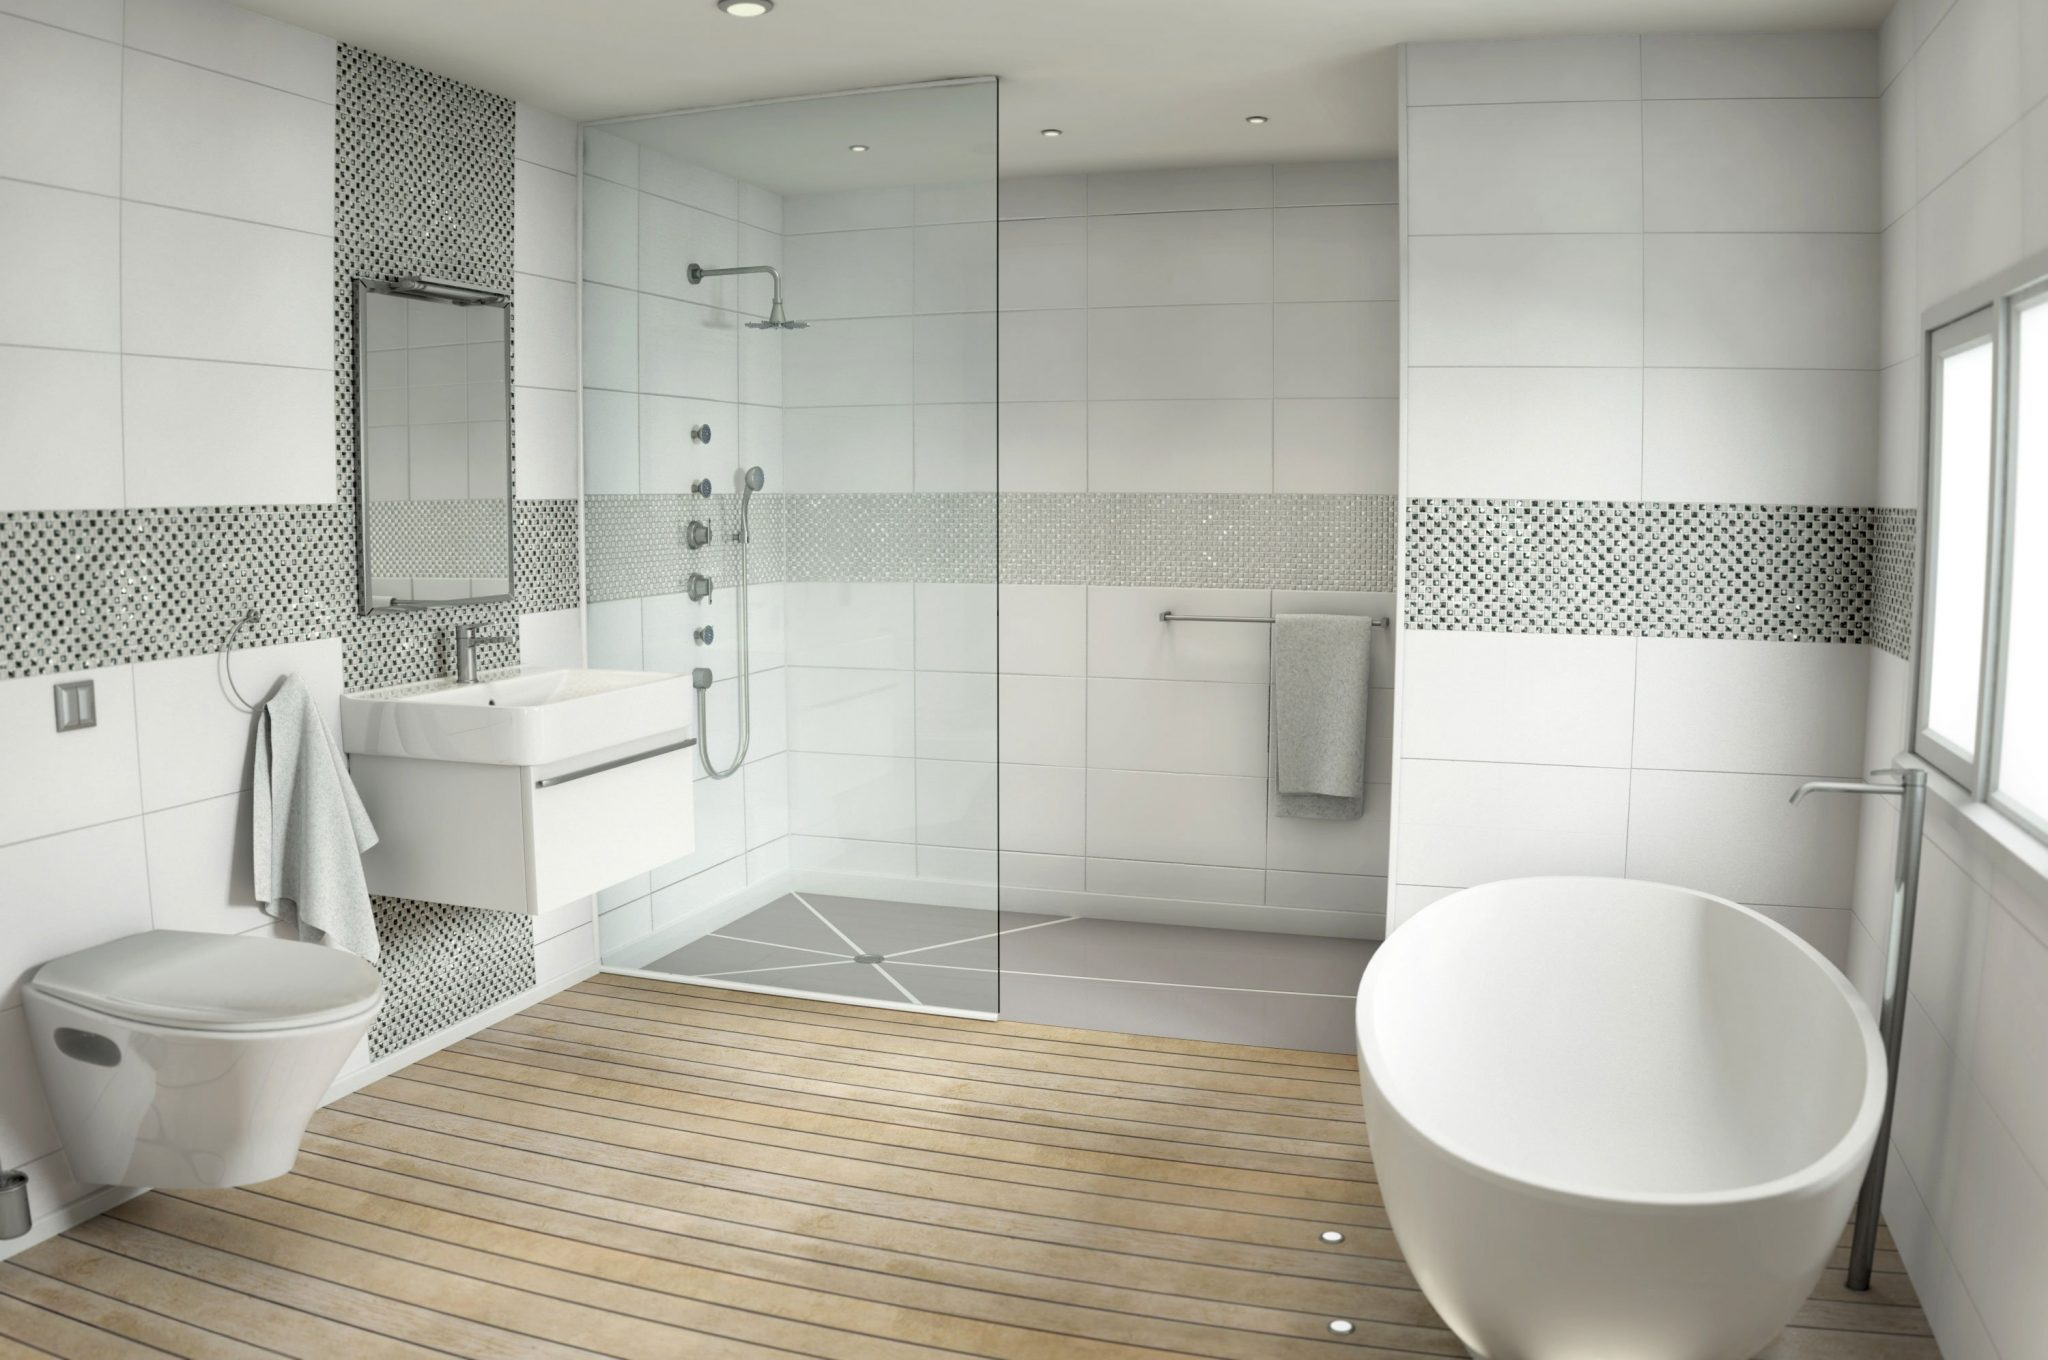 manhattan star 1 5 x 1 5 rh mosaicvillage co uk white mosaic tiles bathroom mosaic tiles bathroom ideas